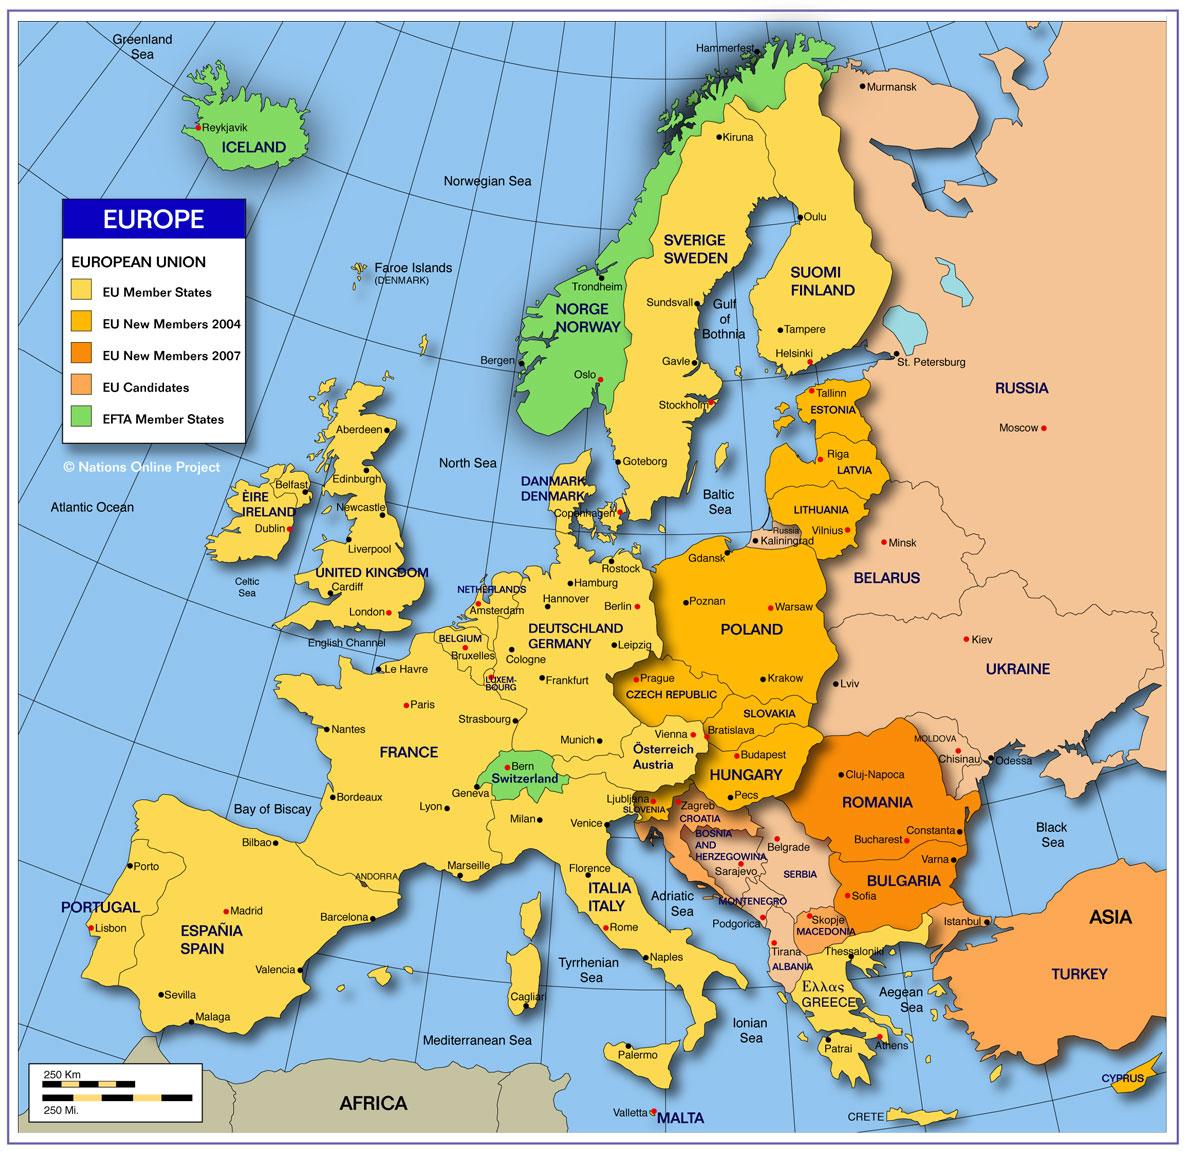 map showing the countries of europe with international borders the national capitals and major cities